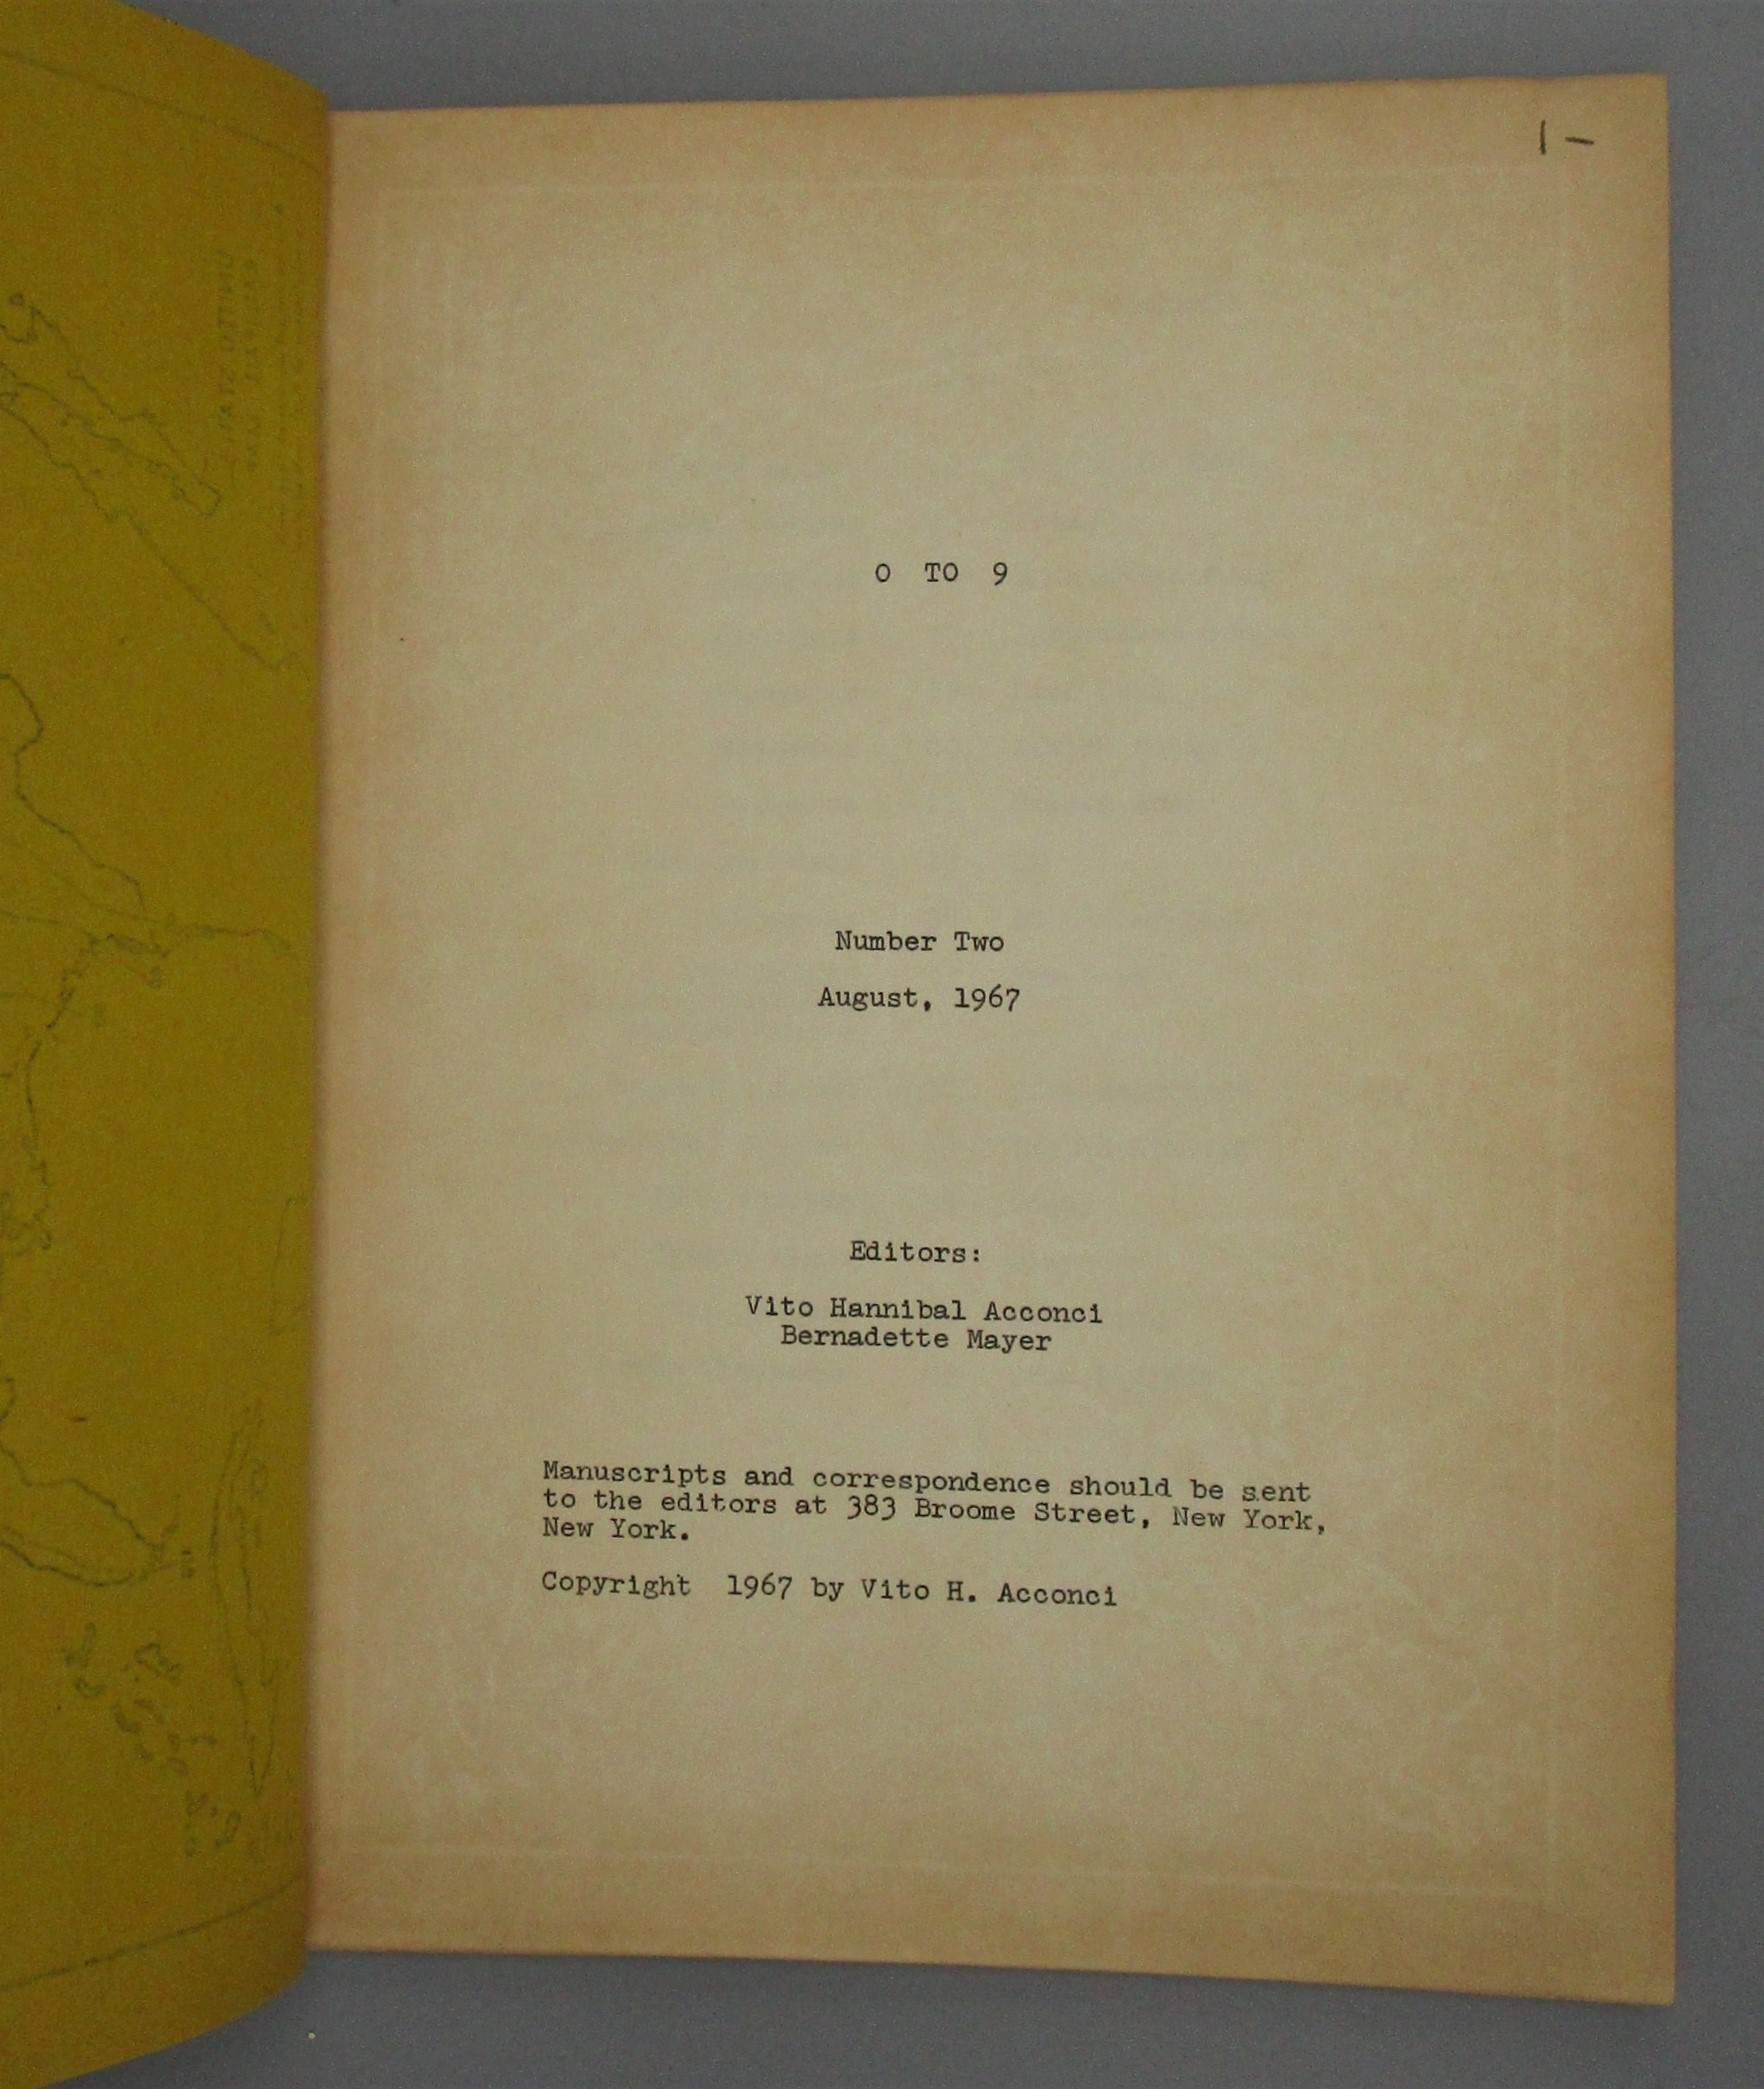 0 to 9 Literary Magazine, ed by Acconci & Mayer - Aug 1967, #1 [Mimeo Revolution]